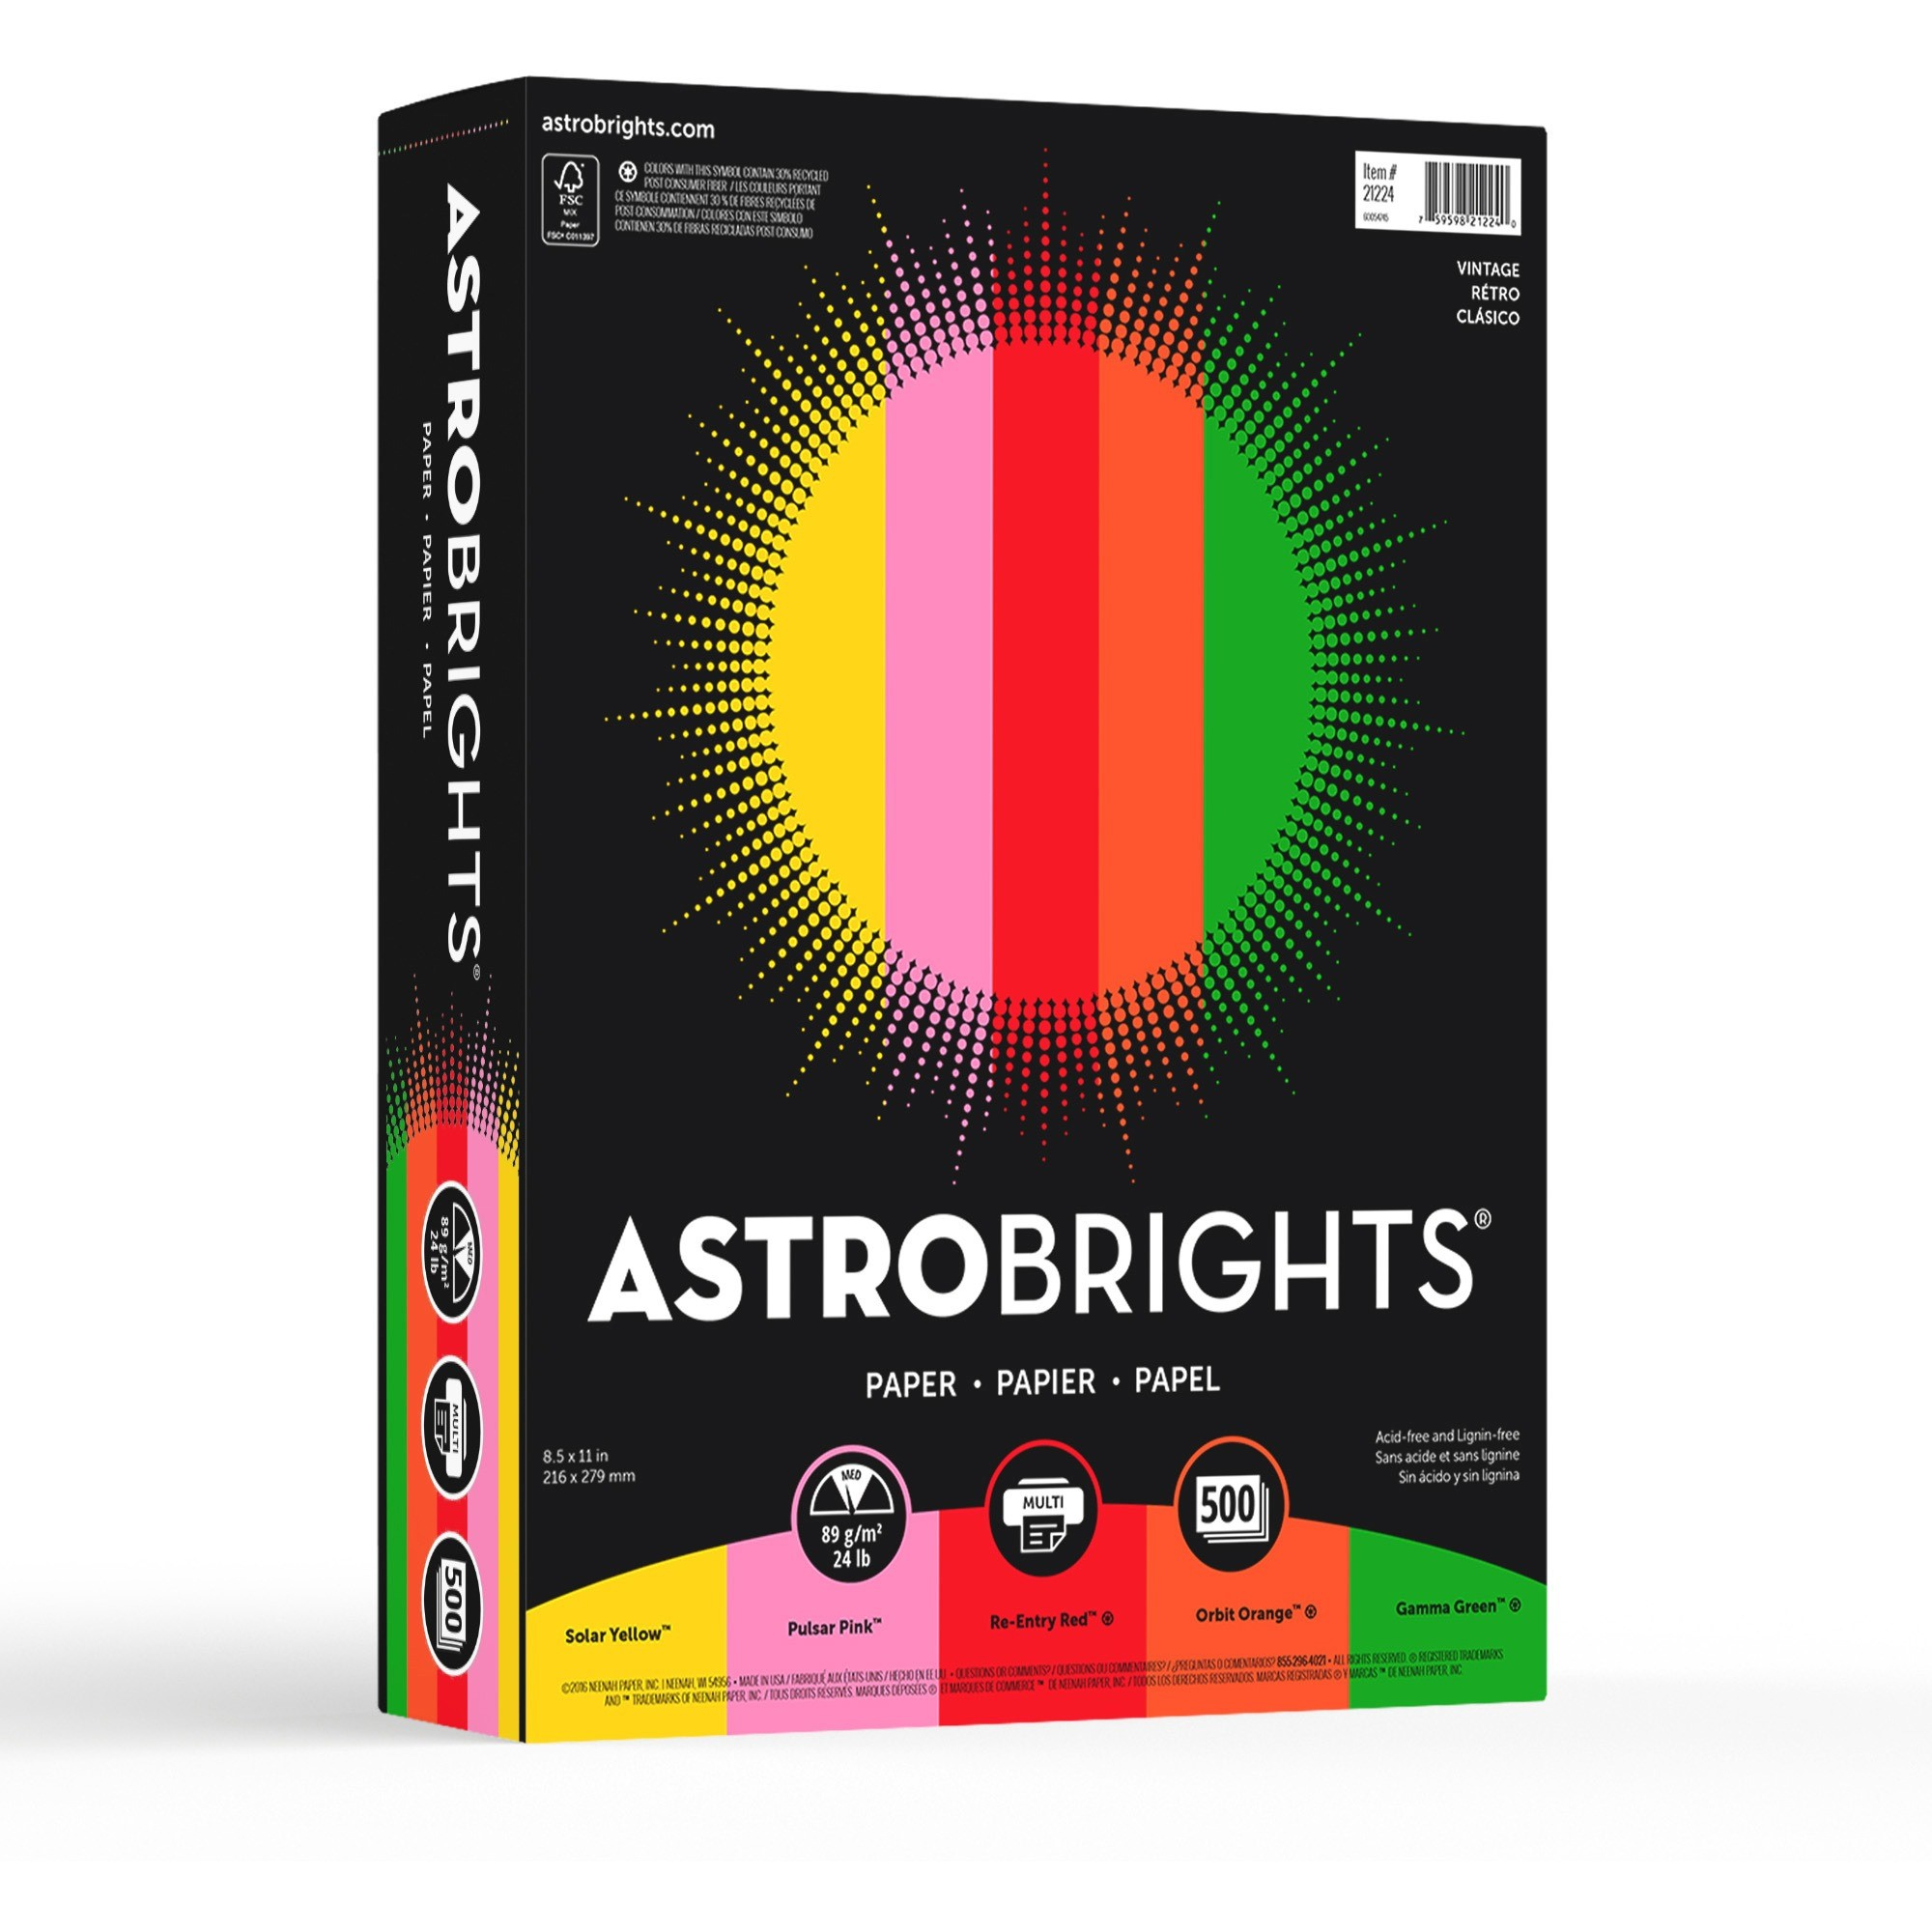 Wausau Paper Astrobrights Colored Paper, 24lb, 8-1/2 x 11, 500 Sheets/Ream